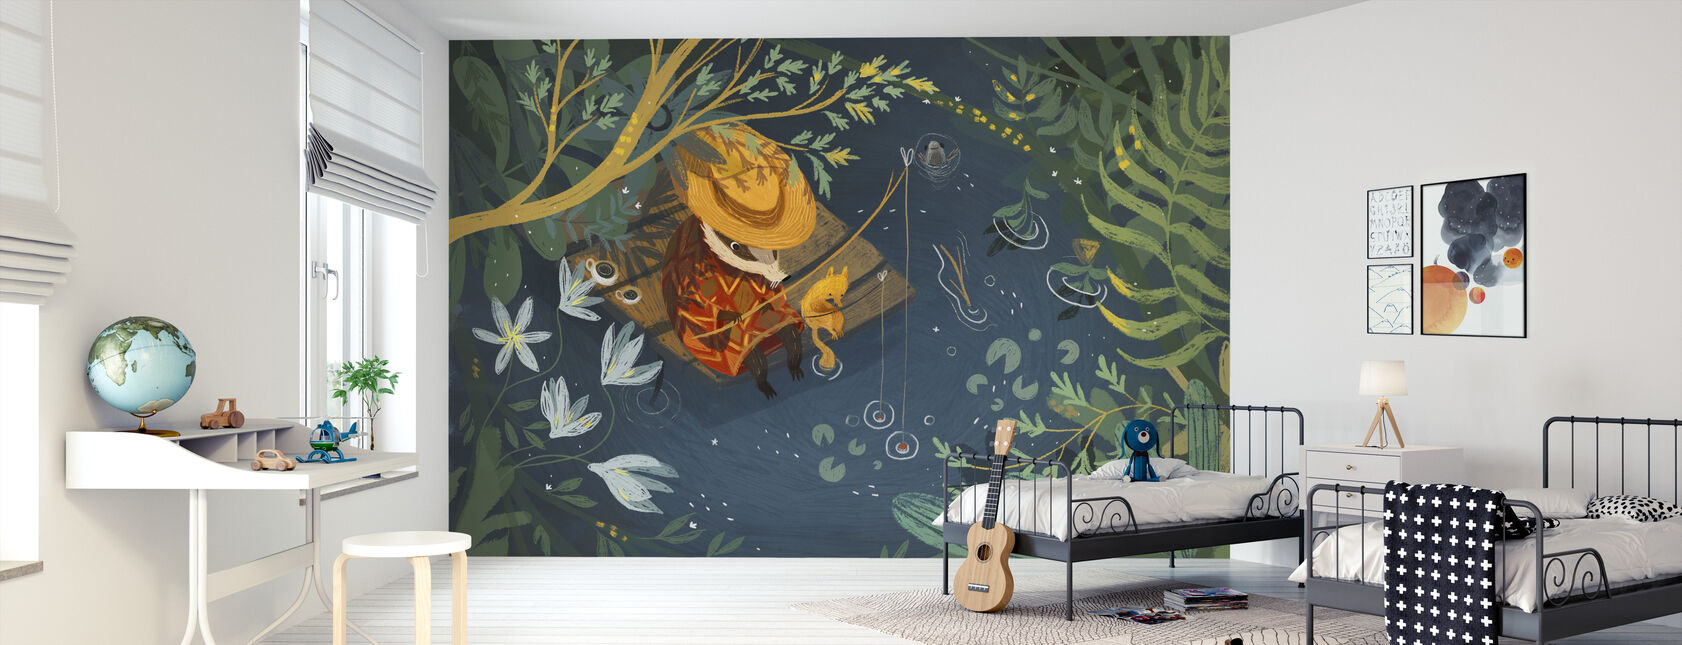 Summer Fishing - Wallpaper - Kids Room